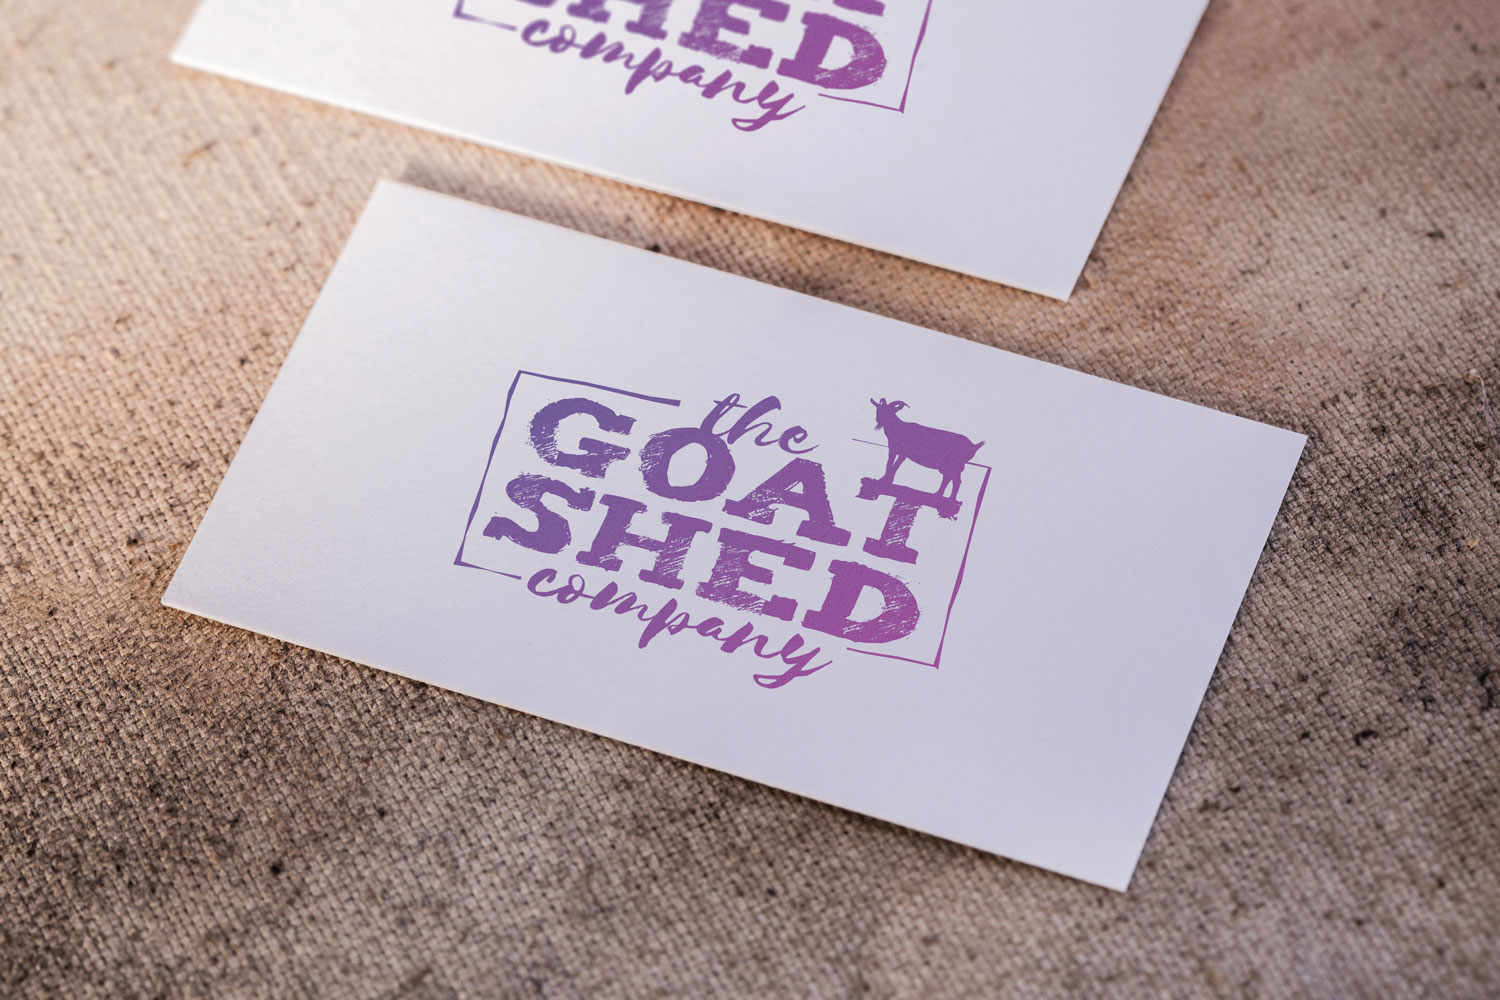 The Goat Shed Company Logo Design